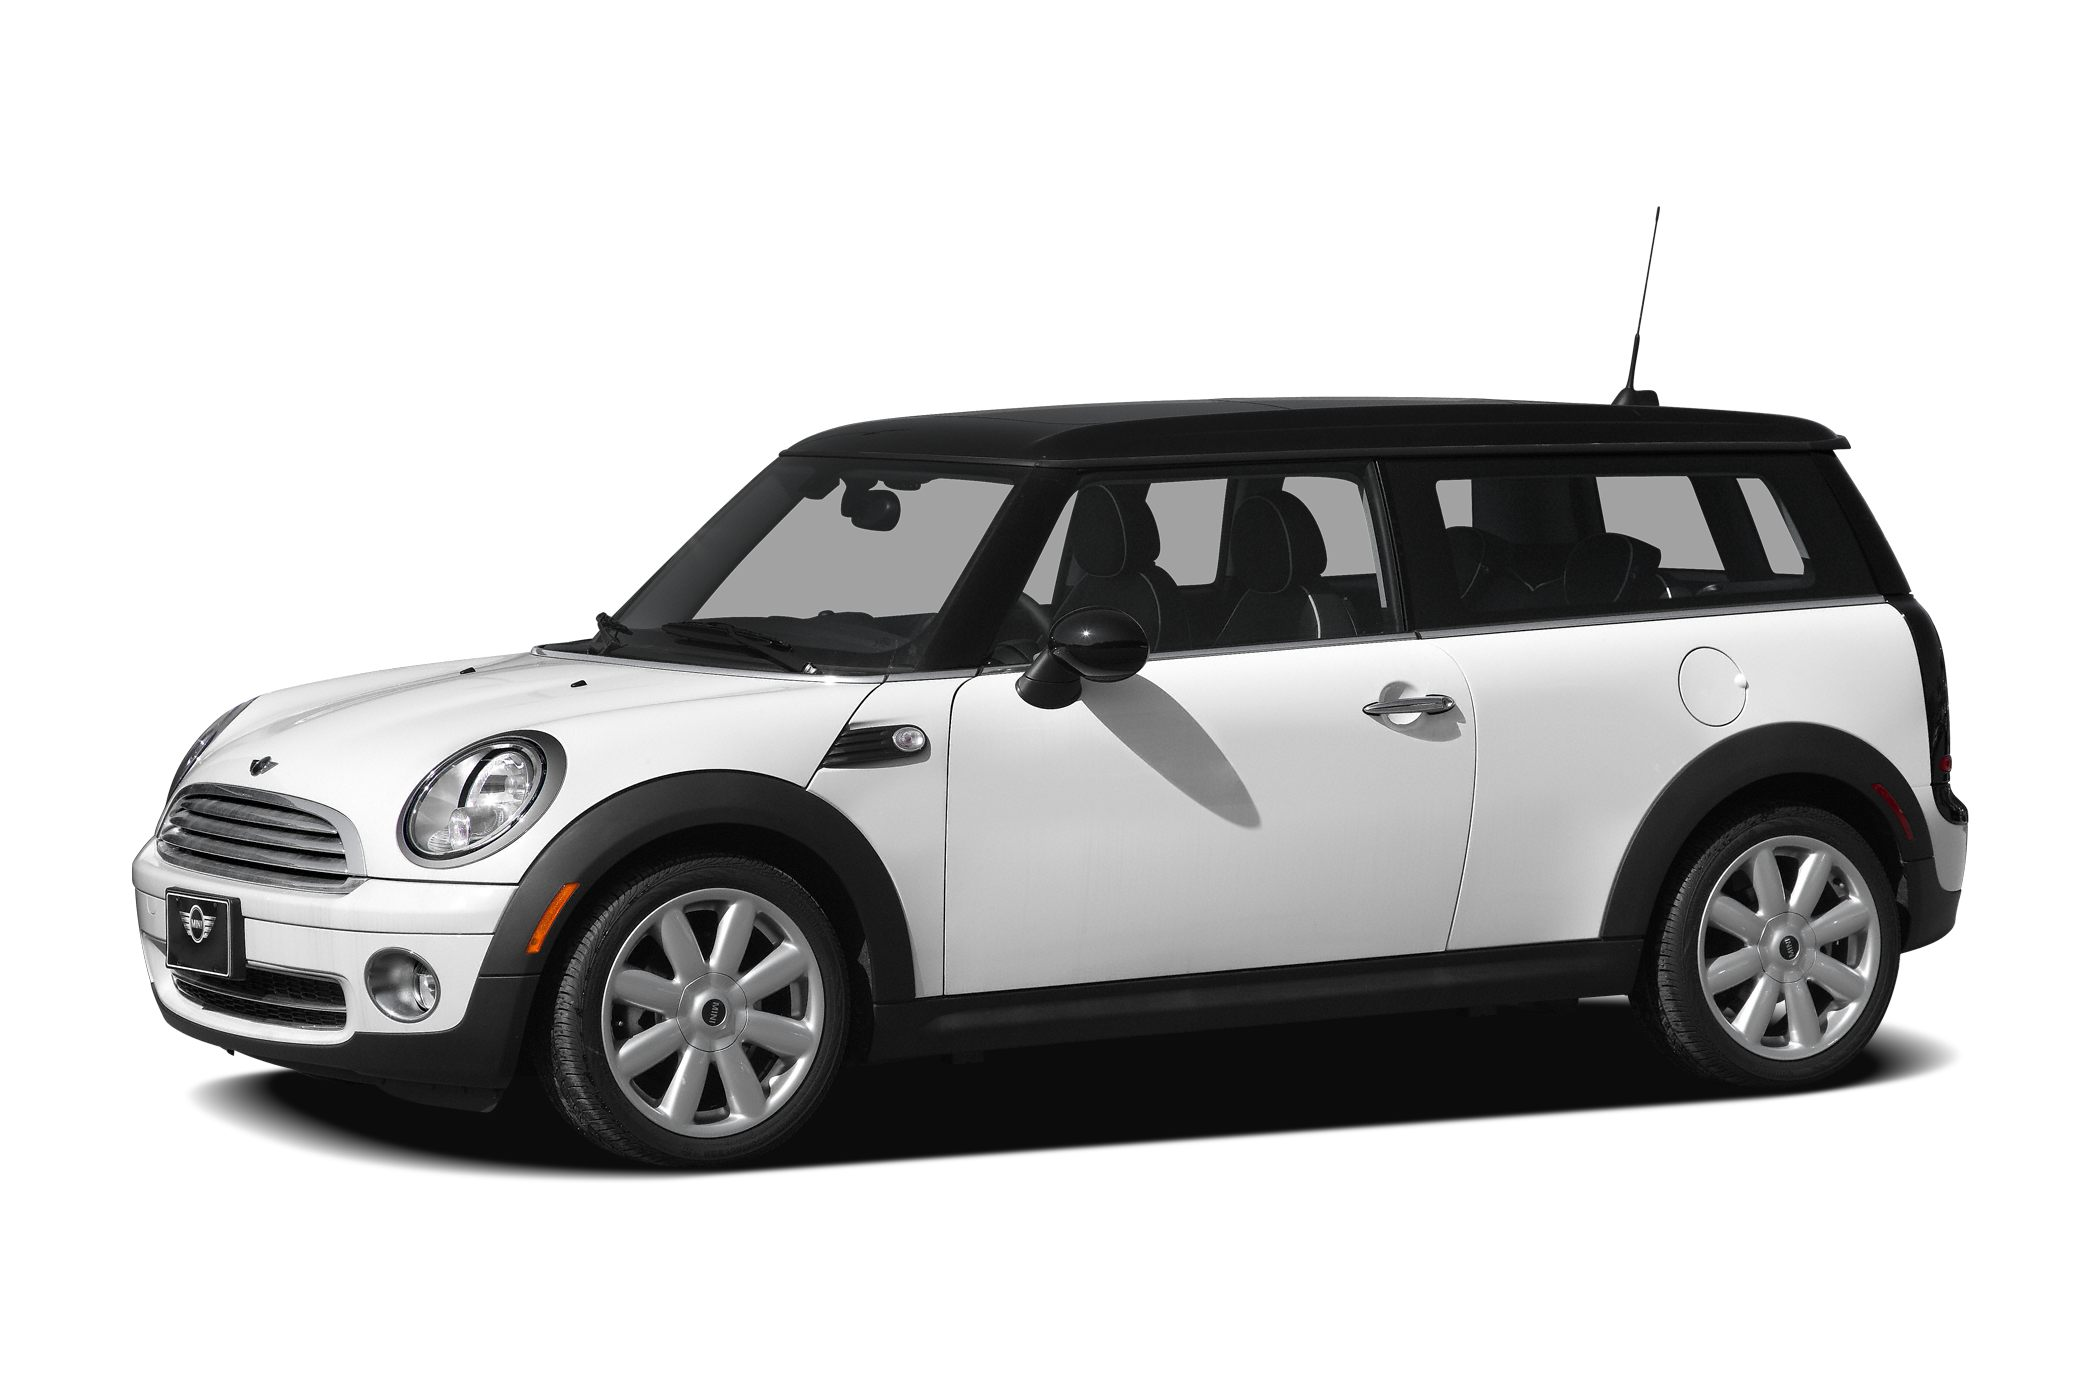 2009 MINI Cooper Clubman Wagon for sale in Lafayette for $9,500 with 143,339 miles